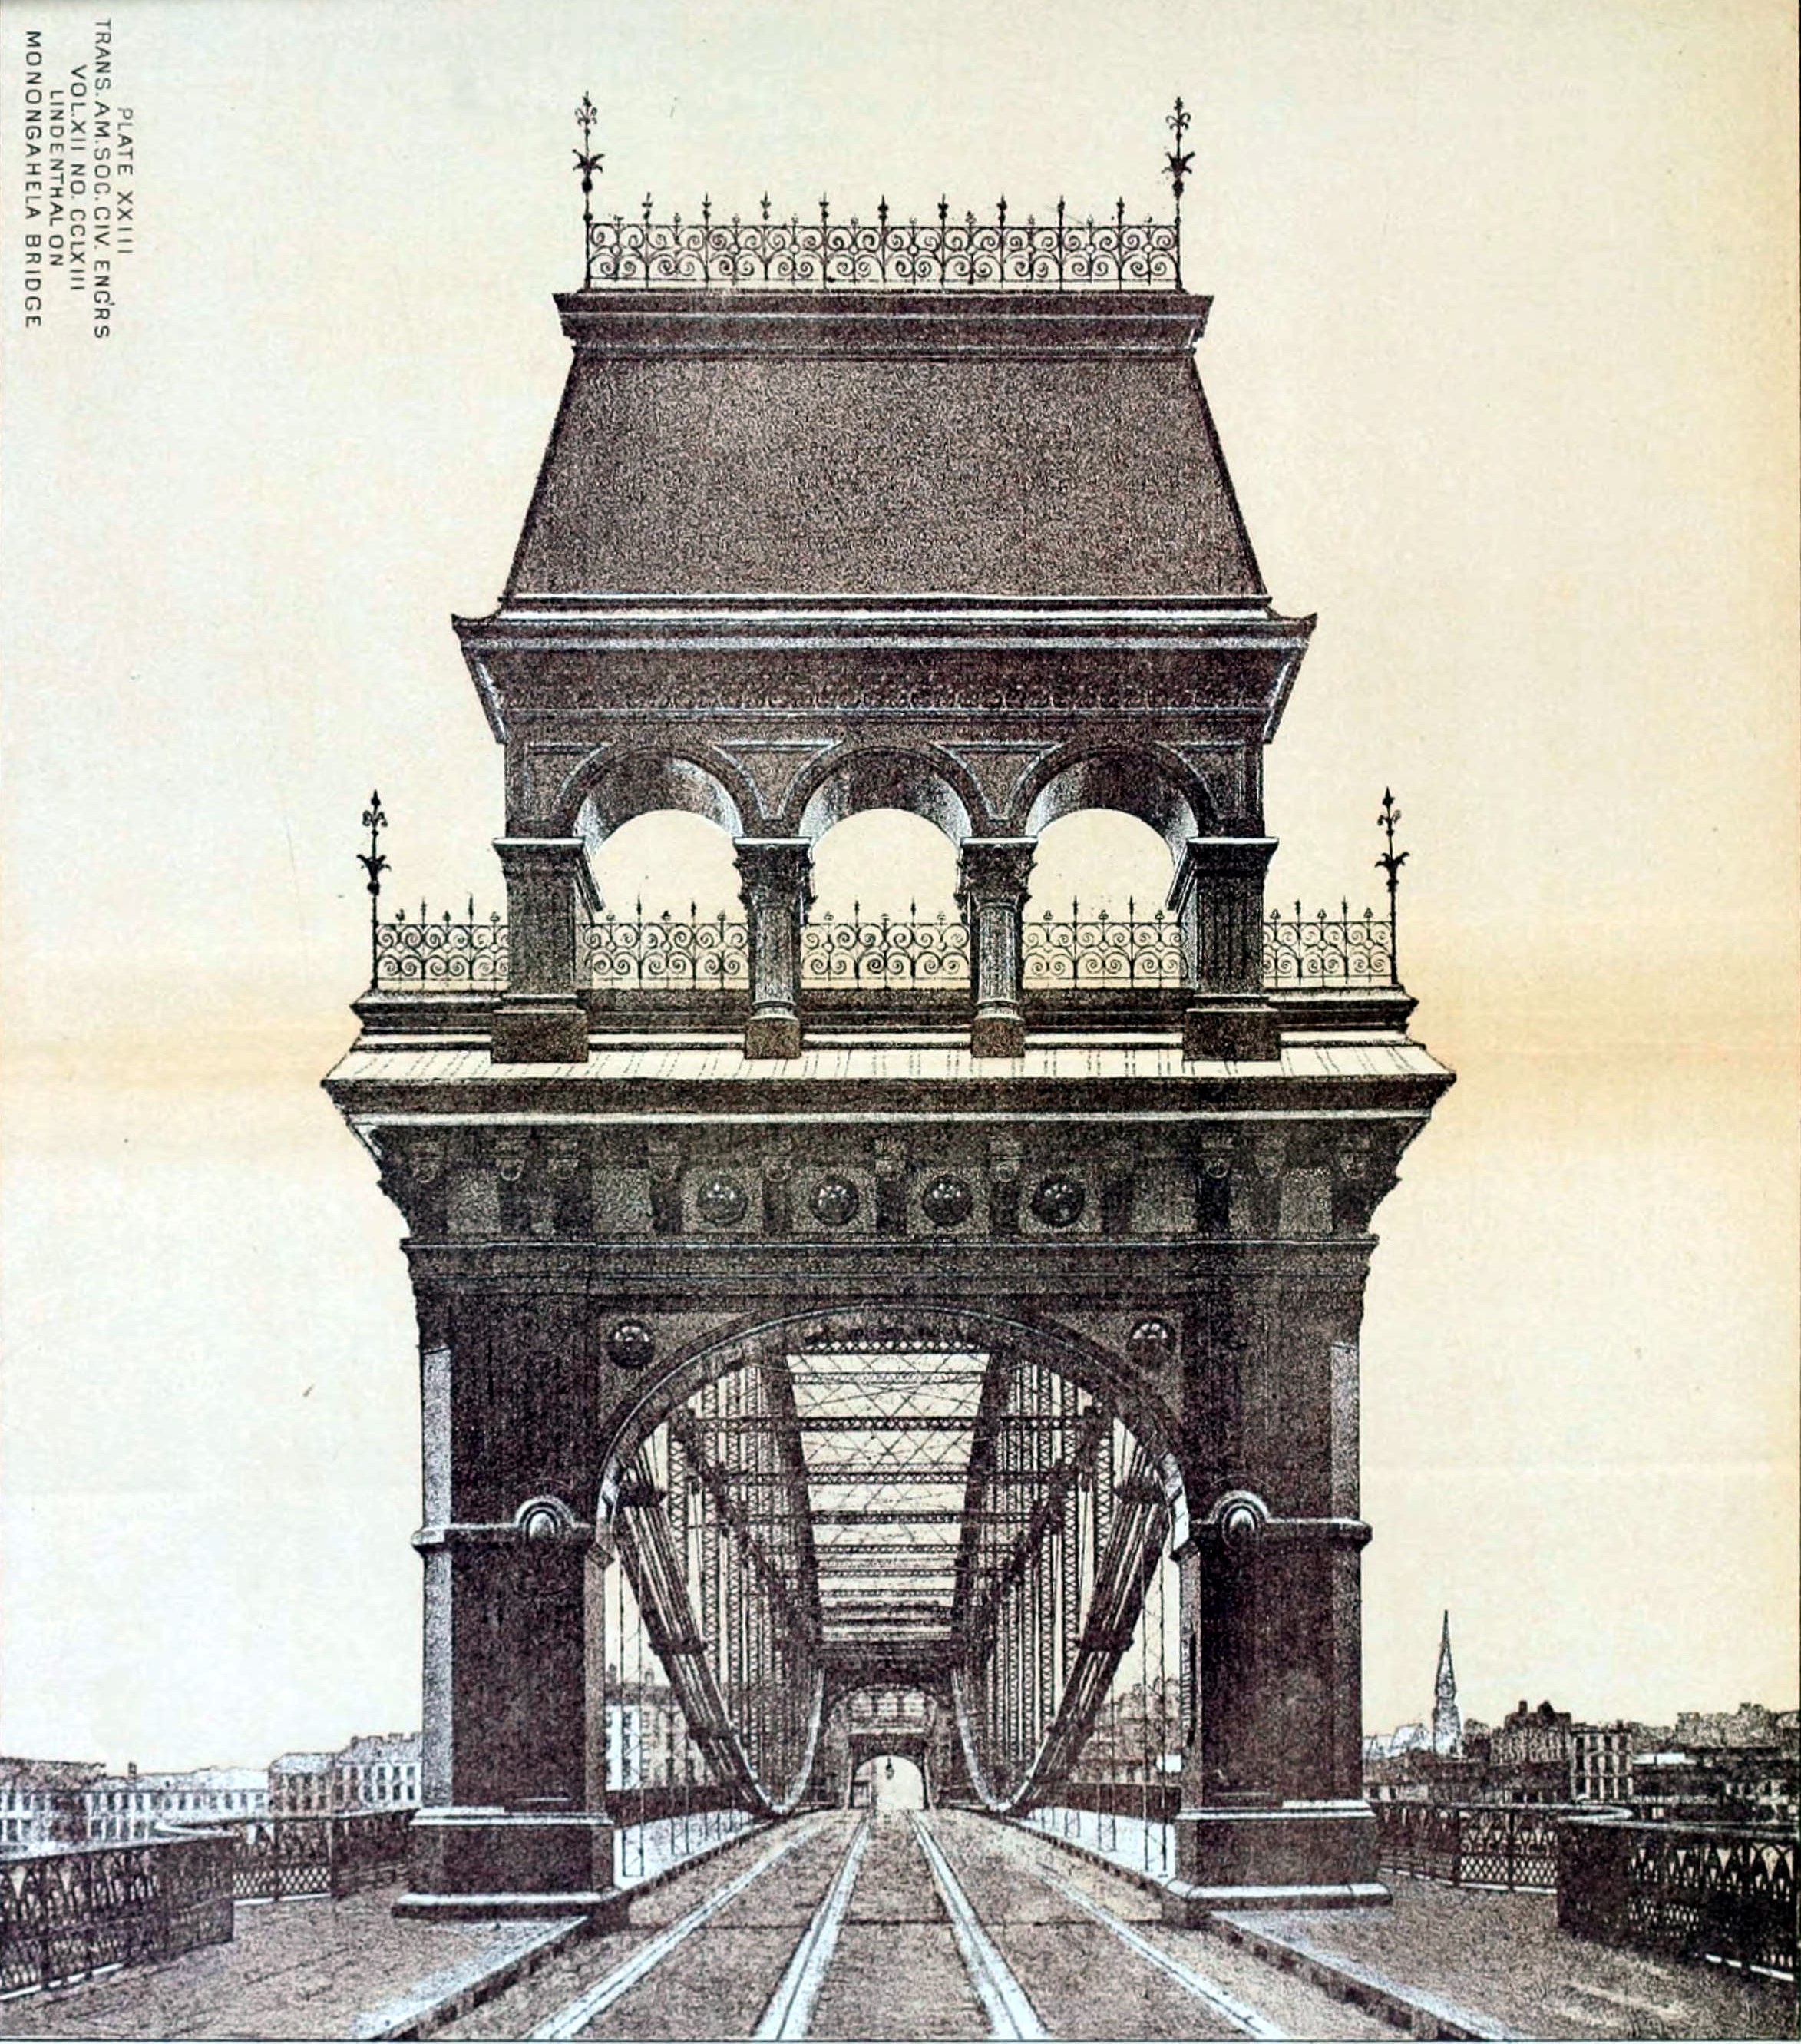 The original bridge portals that greeted those crossing it which were replaced in 1915.